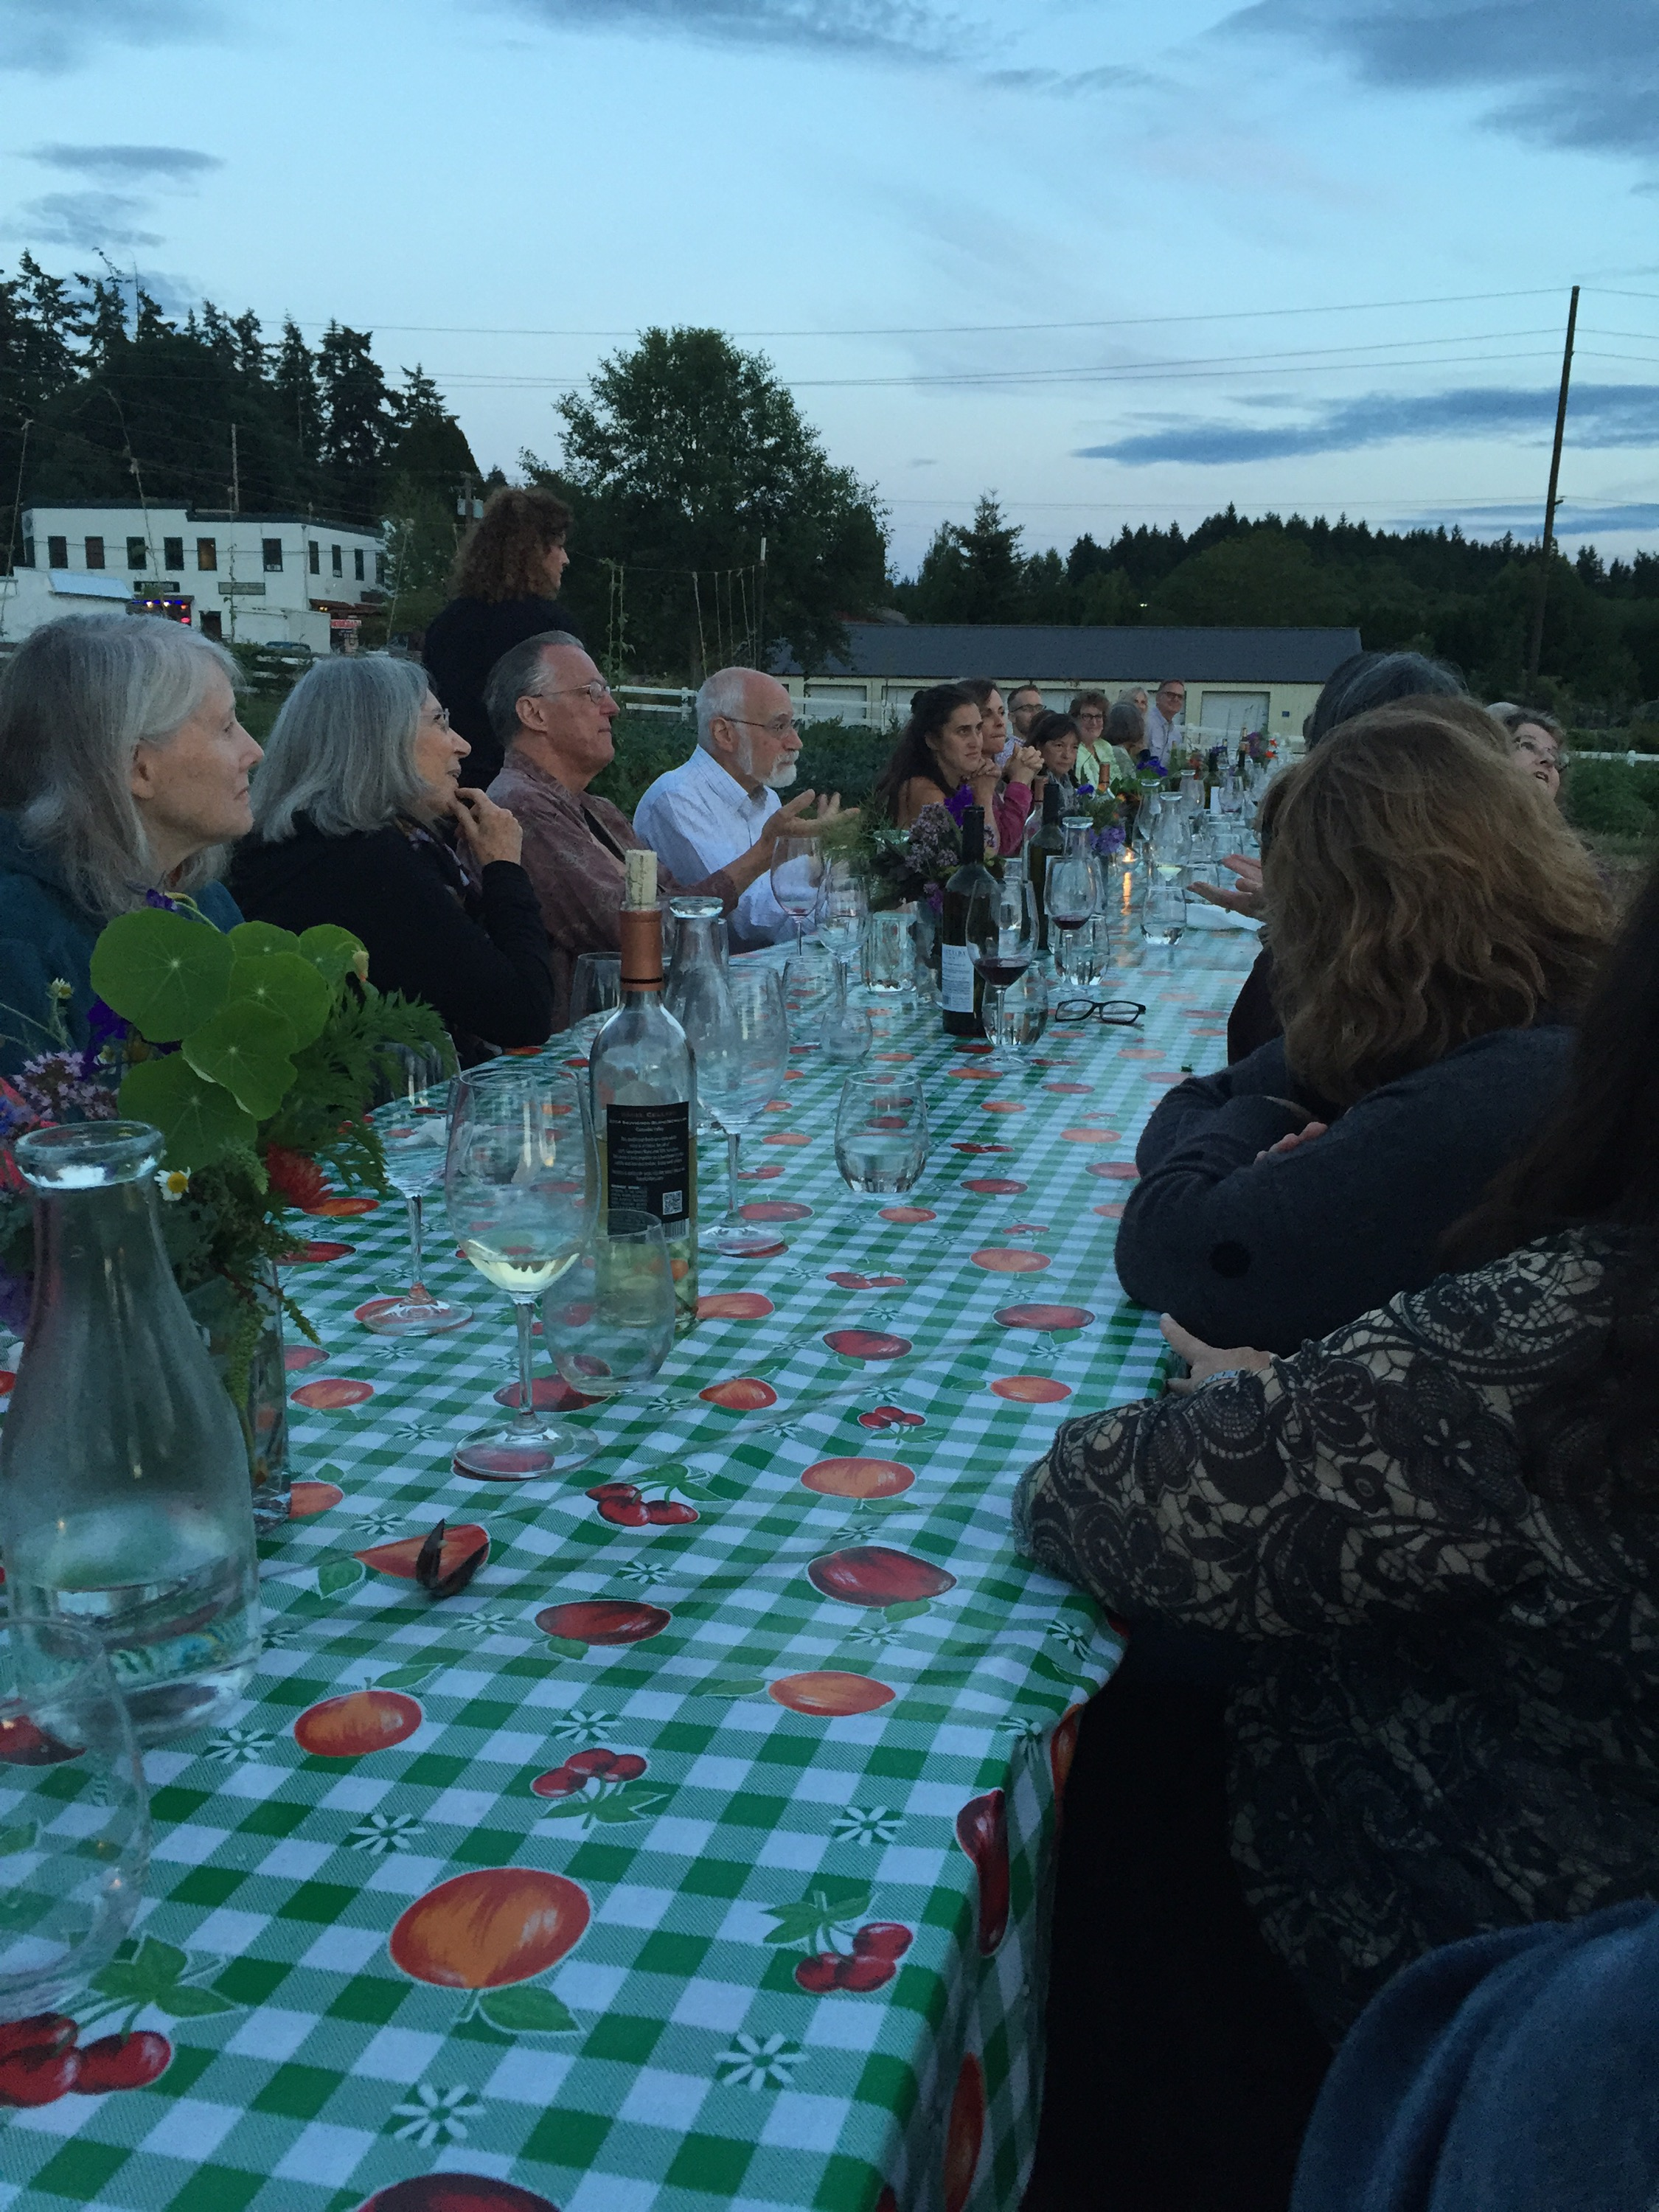 Orchard Kitchen Farm-to-Table Dinner | Whidbey Island Time